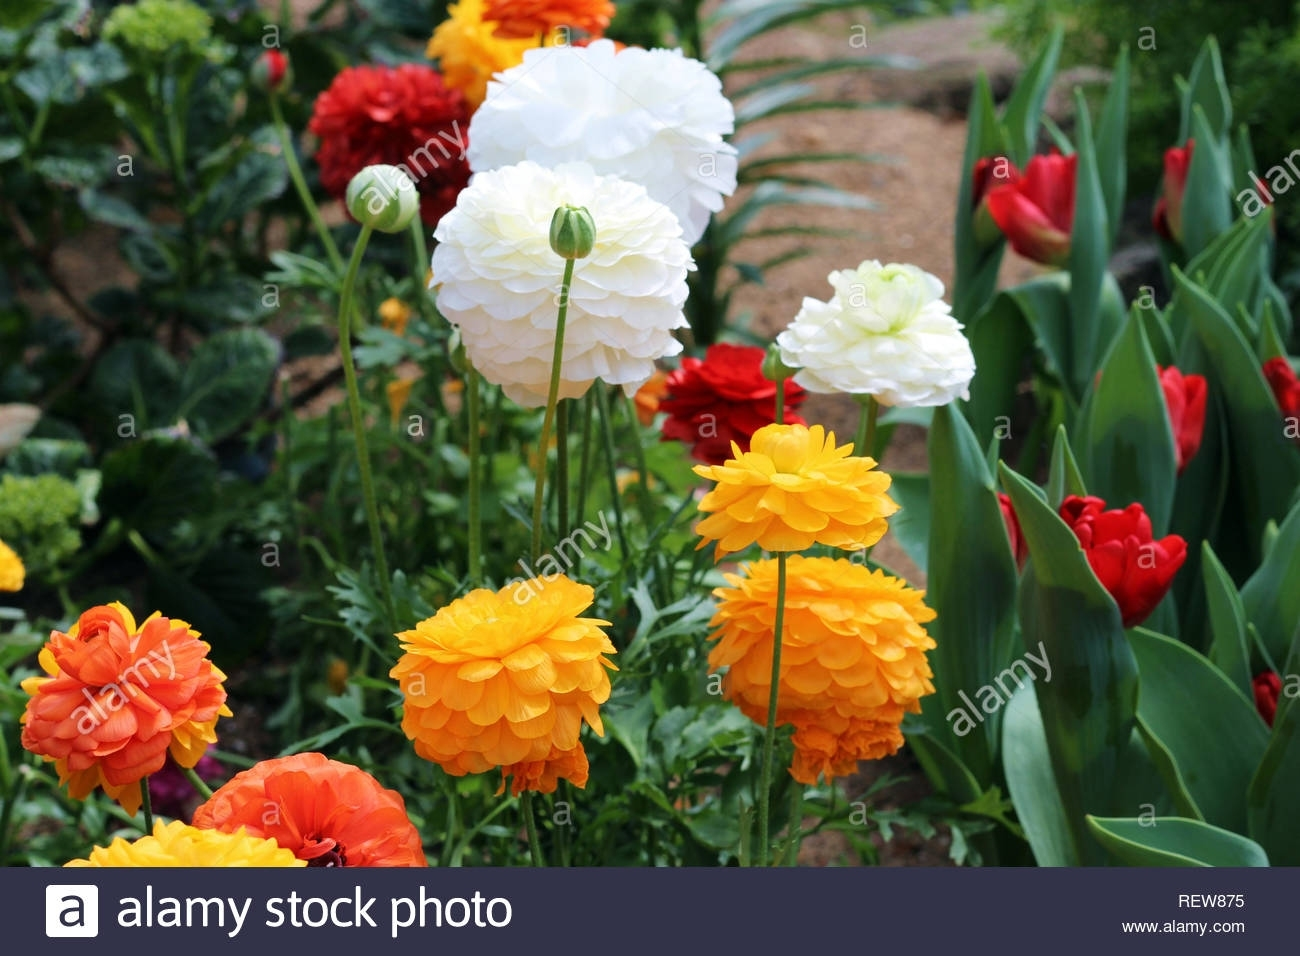 Yellow, Orange, White And Red Ranunculus Flowers Next To Red Tulips inside Garden Flowers Usually Yellow Or Orange